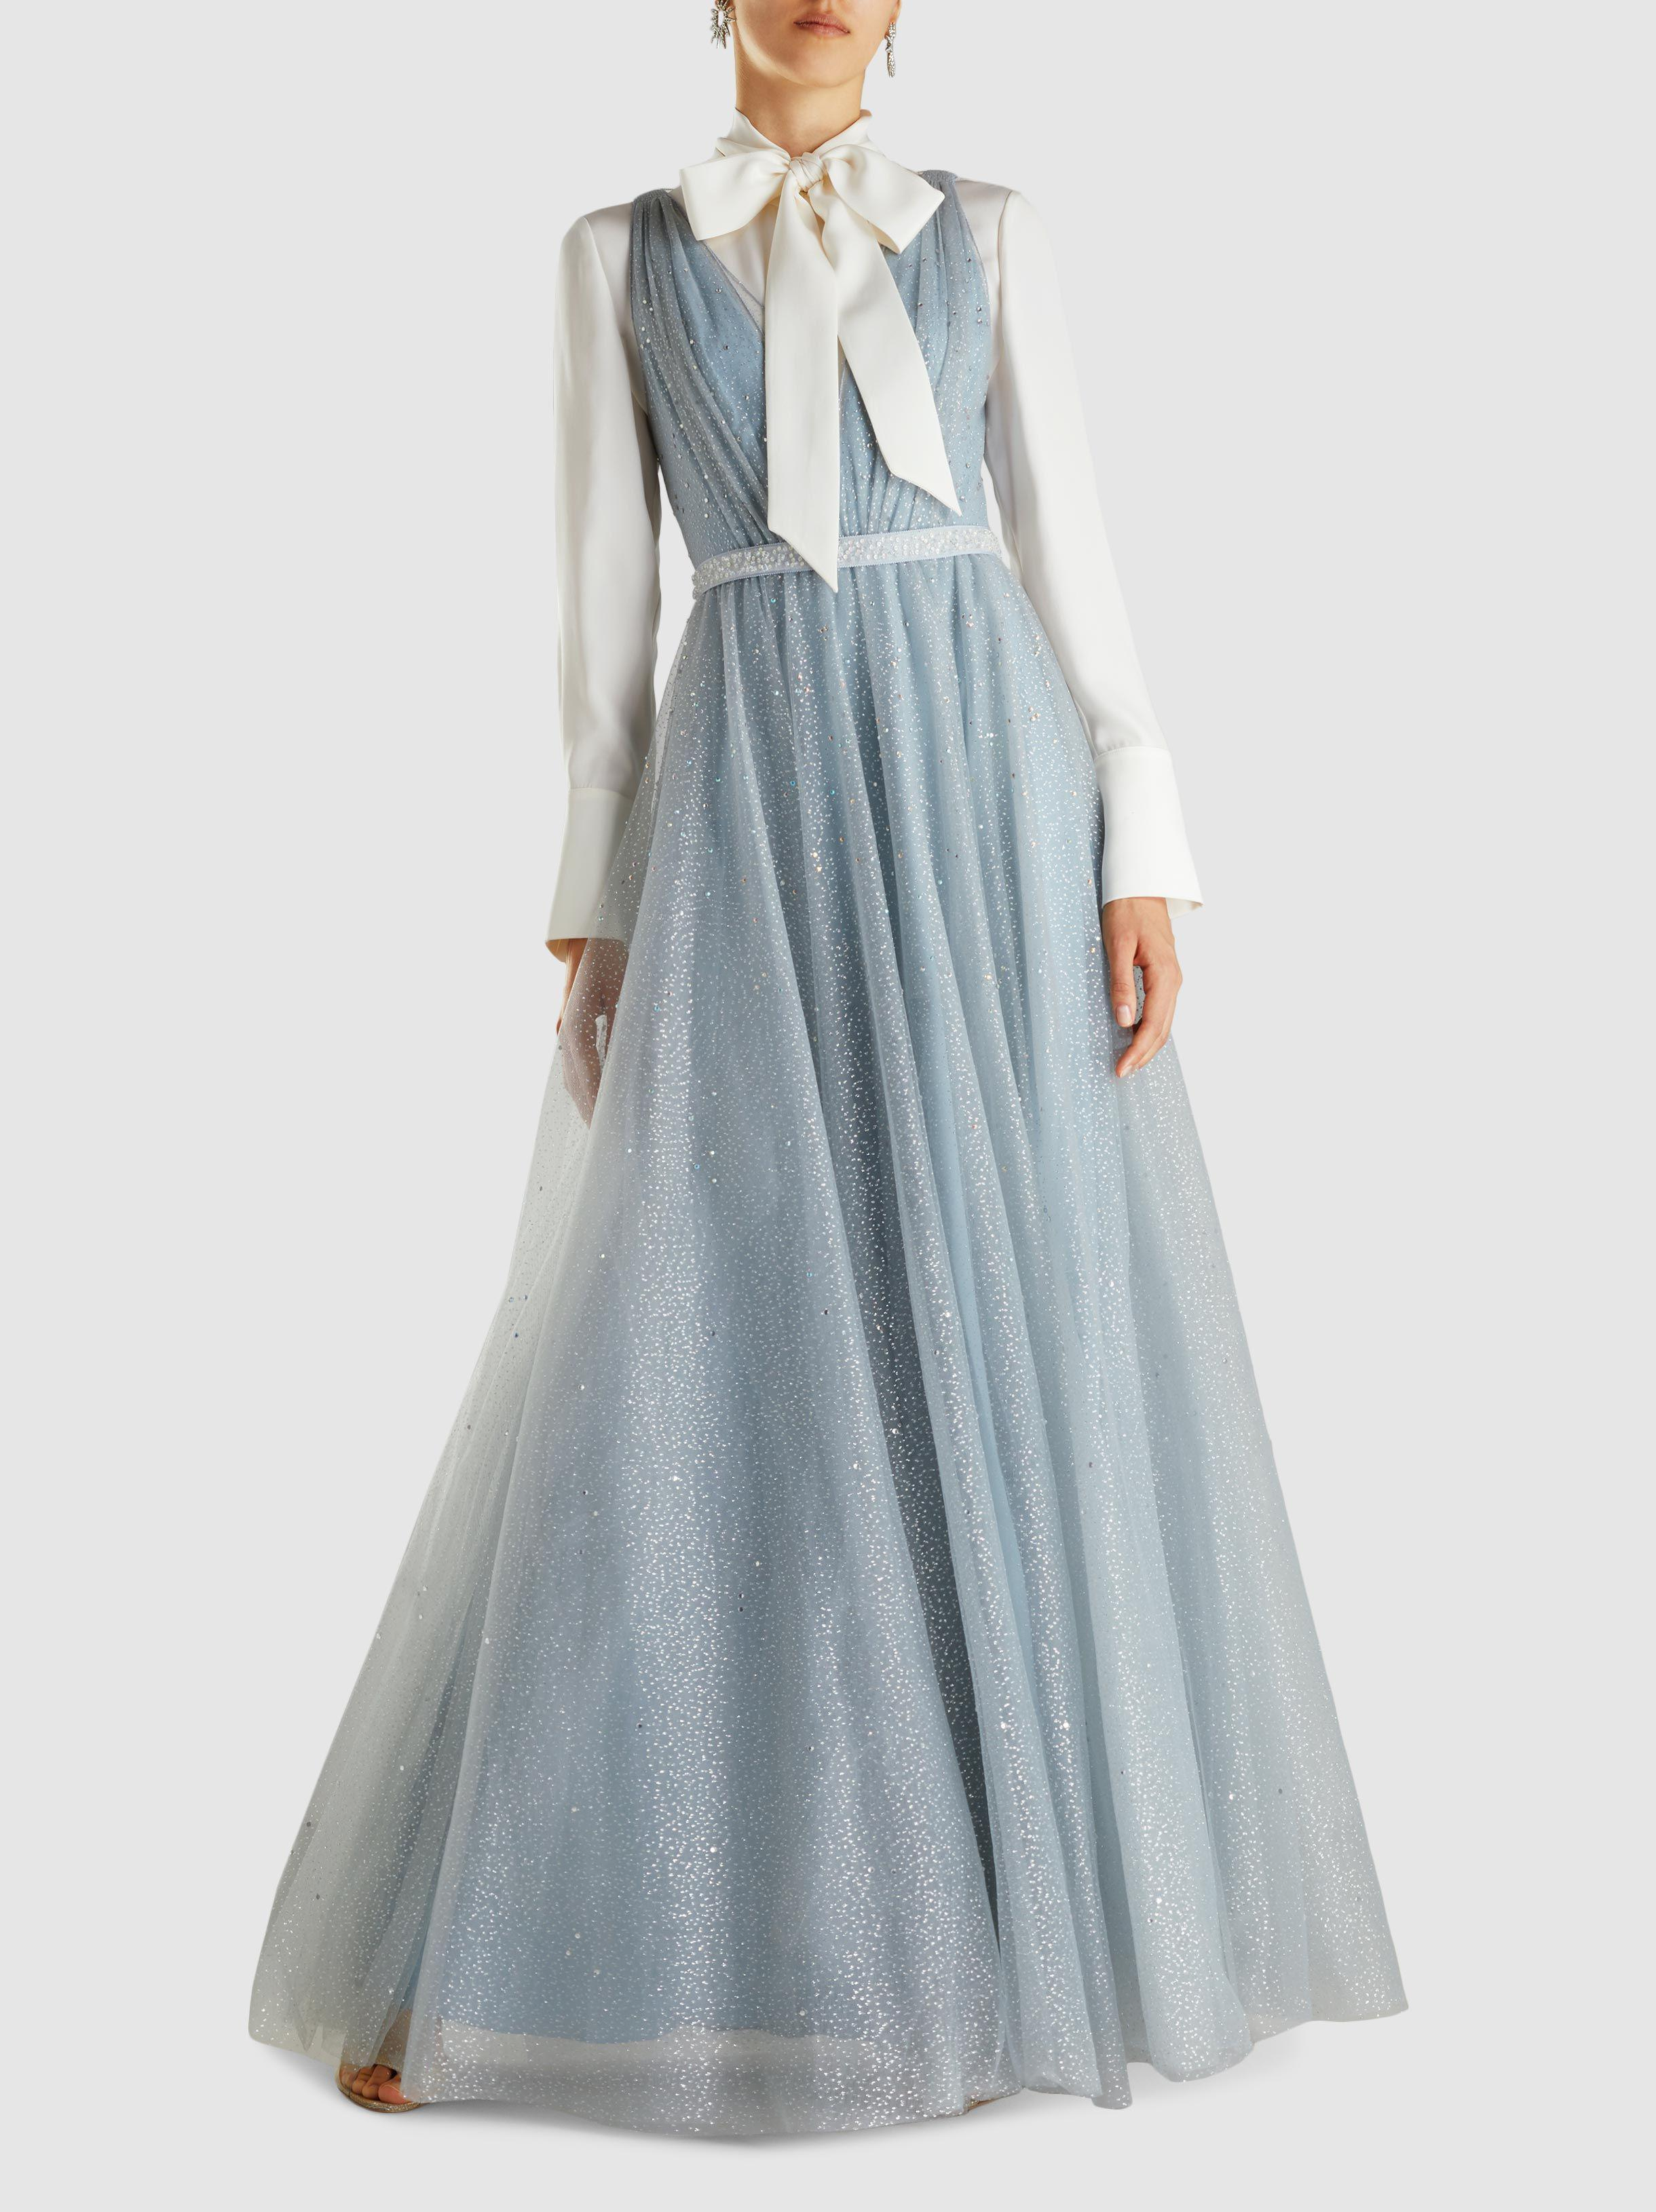 Lyst - Jenny Packham Skye Crystal-embellished Tulle Gown in Blue